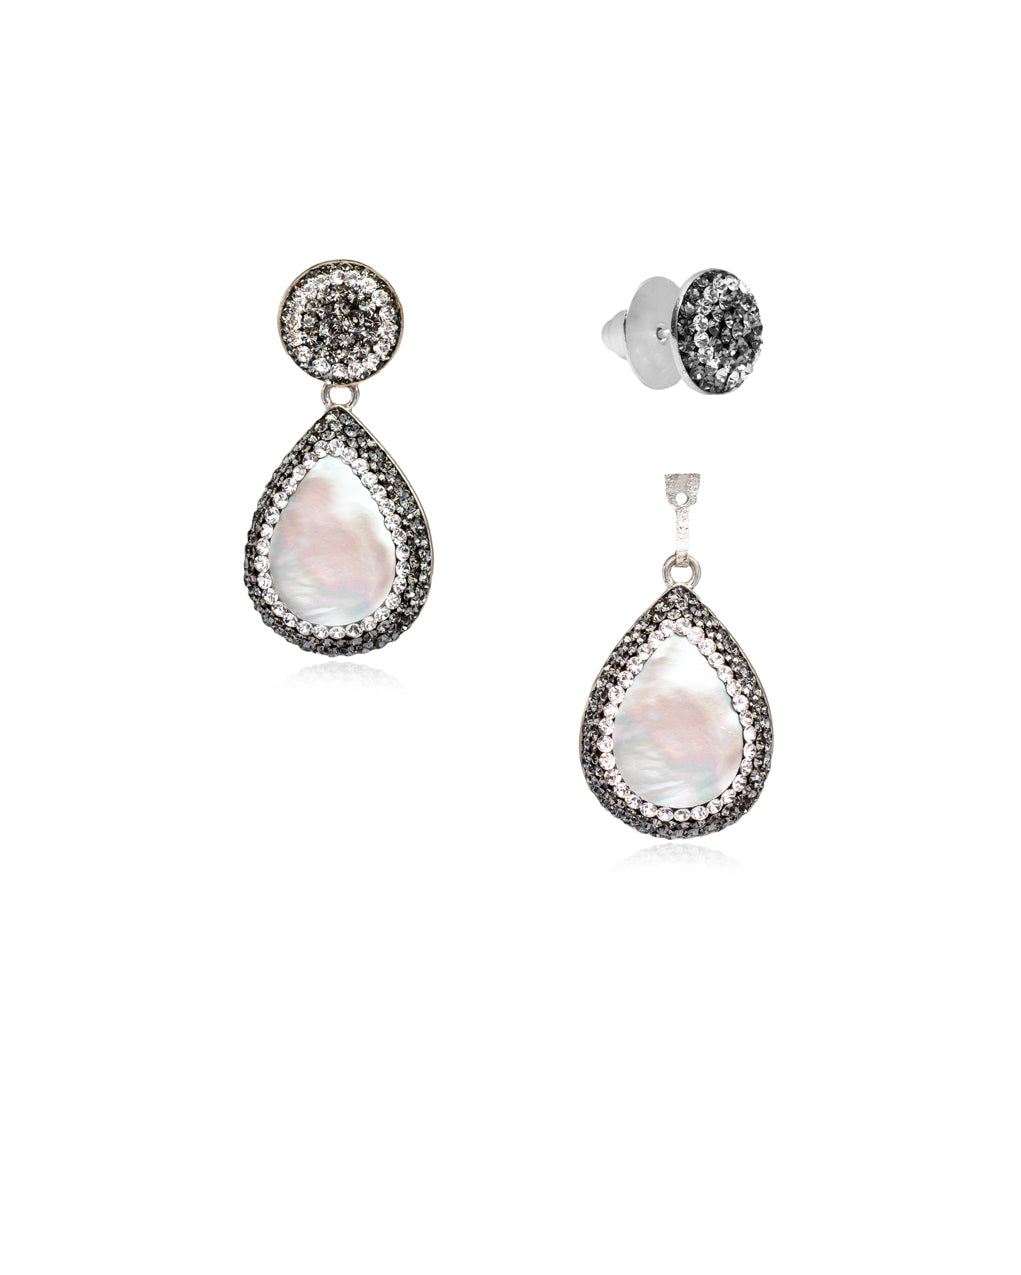 2Way Round Studs & Tear Gem E Baroque Pearl, Black Diamond & Silver